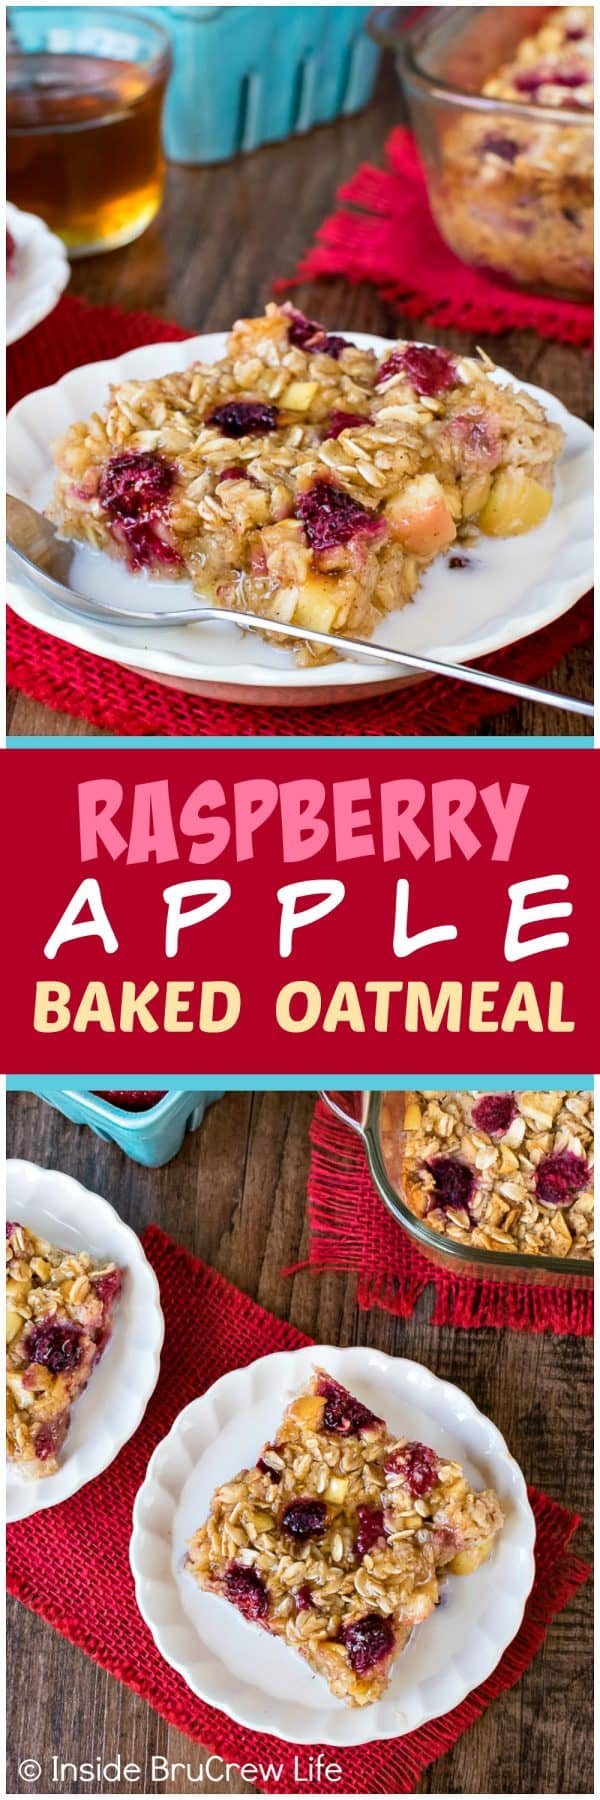 Raspberry Apple Baked Oatmeal - make a pan of baked oatmeal loaded with fruit and honey for an easy breakfast choice. Great recipe to make ahead of time for busy mornings! #oatmeal #apple #raspberry #bakedoatmeal #easy #recipe #breakfast